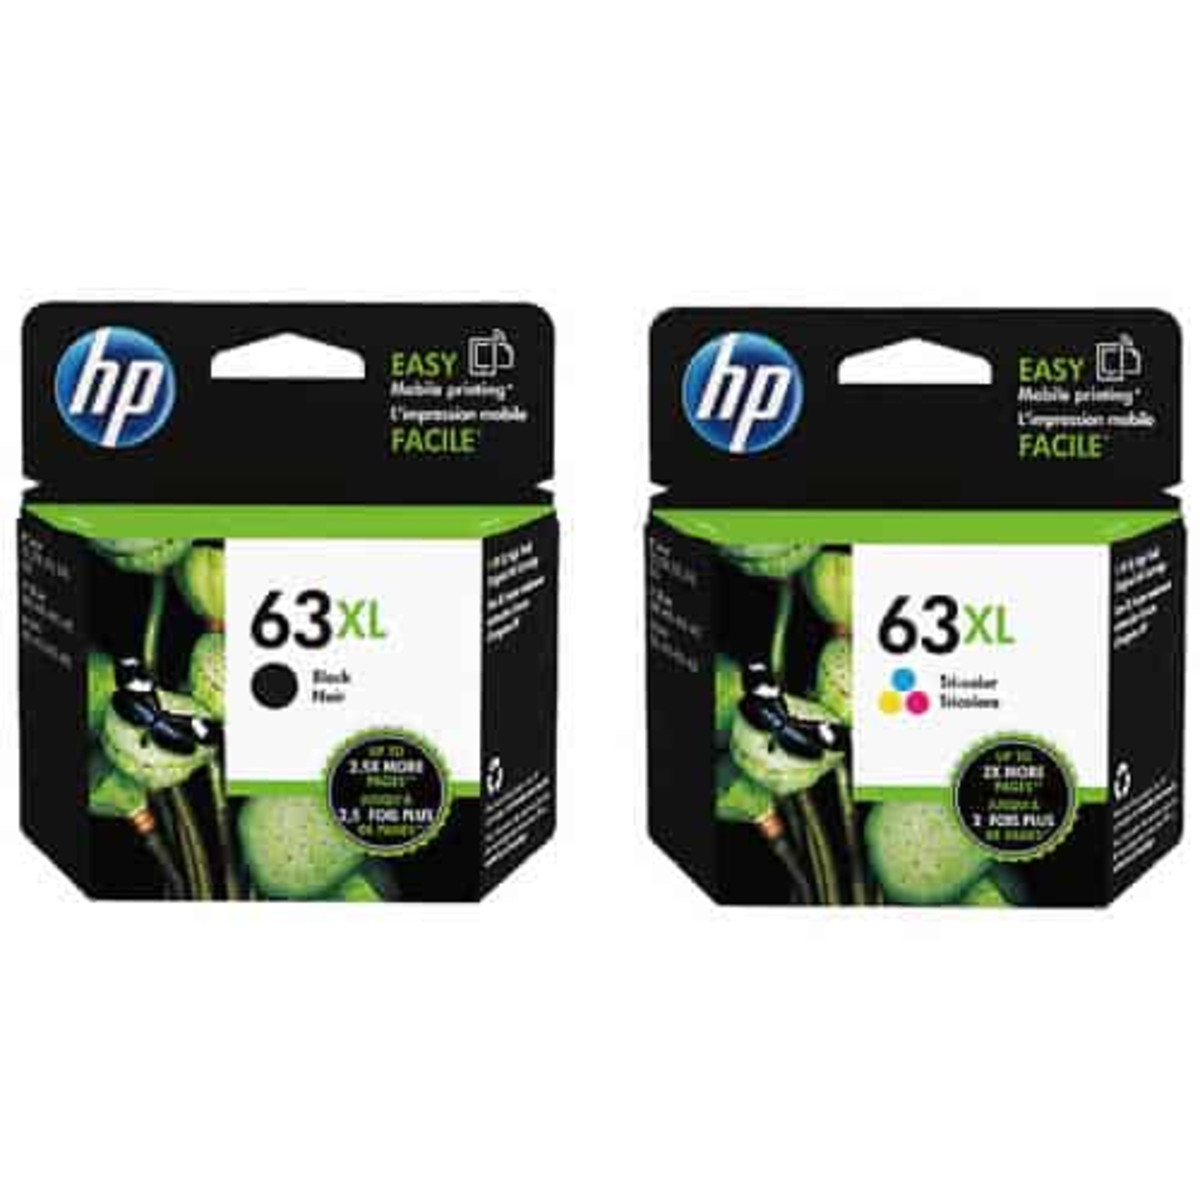 HP 63XL Black and Colour Ink Cartridge Combo Pack